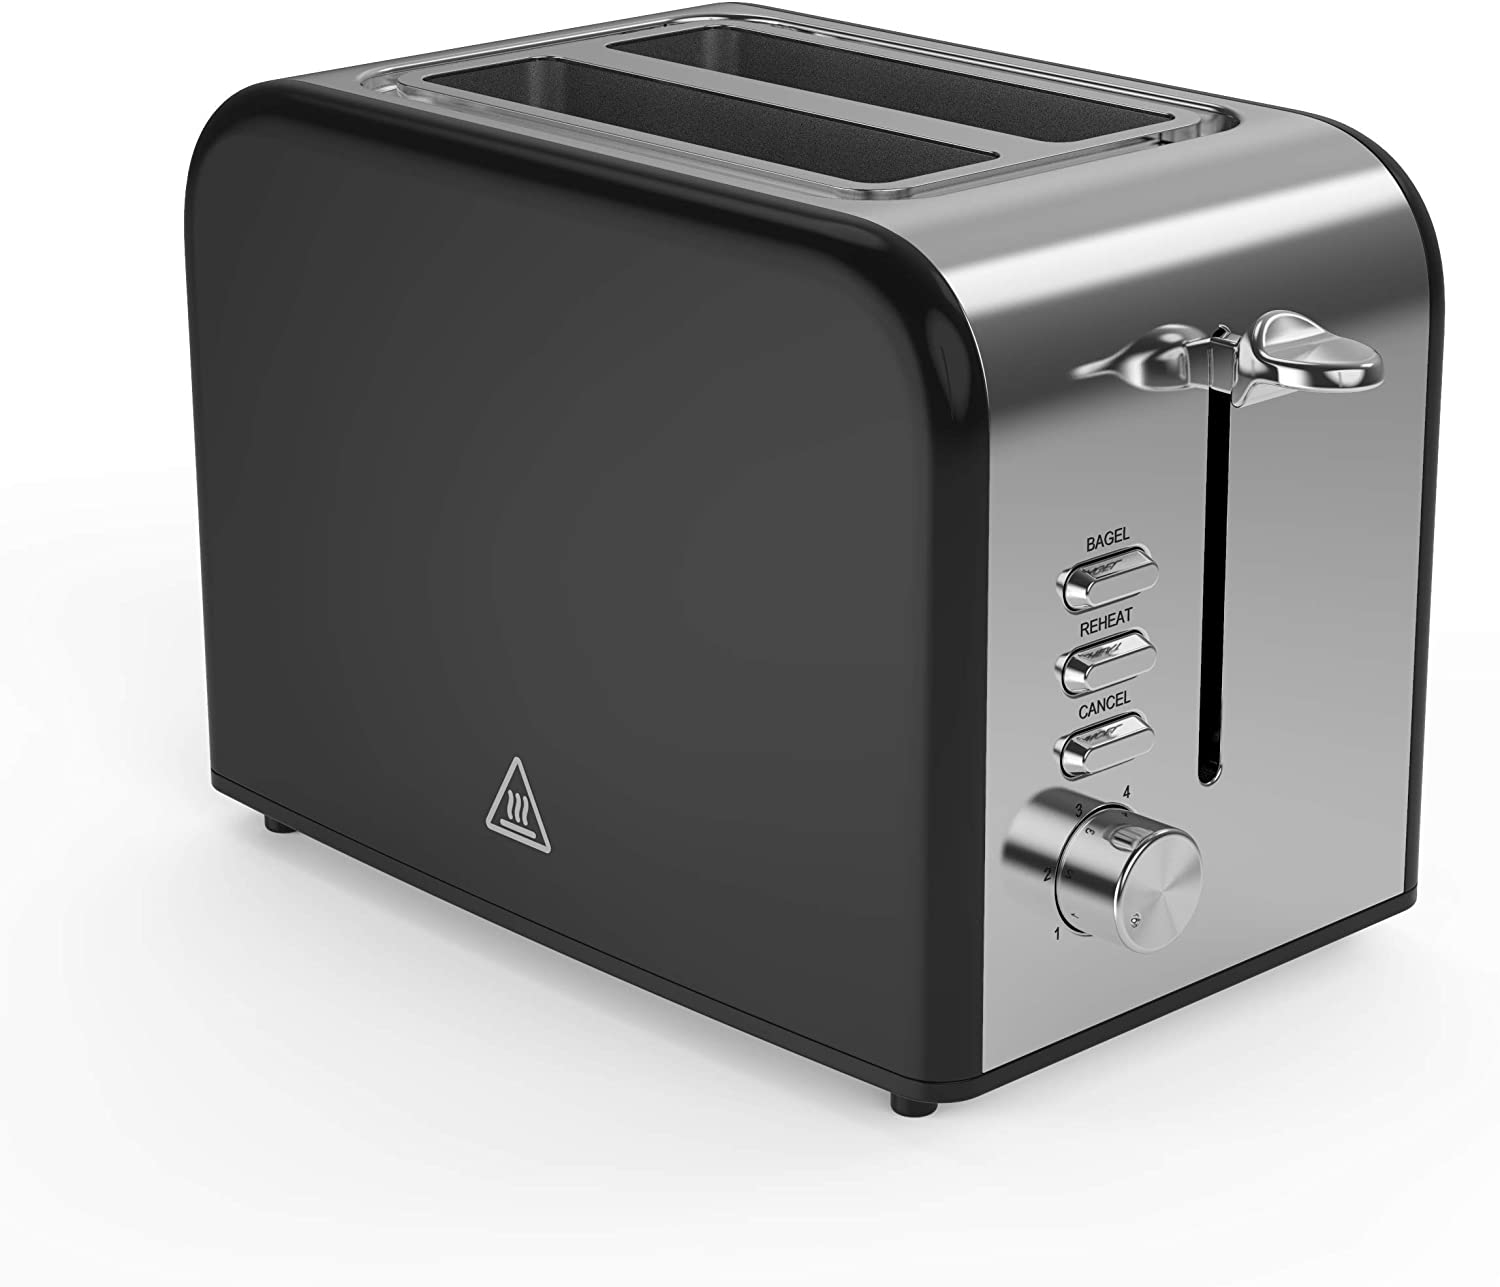 Toaster 2 Slice Toaster Evenly And Quickly Black Stainless Steel Bagel Toaster With 2 Wide Slots 6 Browning Dials And Removable Crumb Tray For Bread Waffles